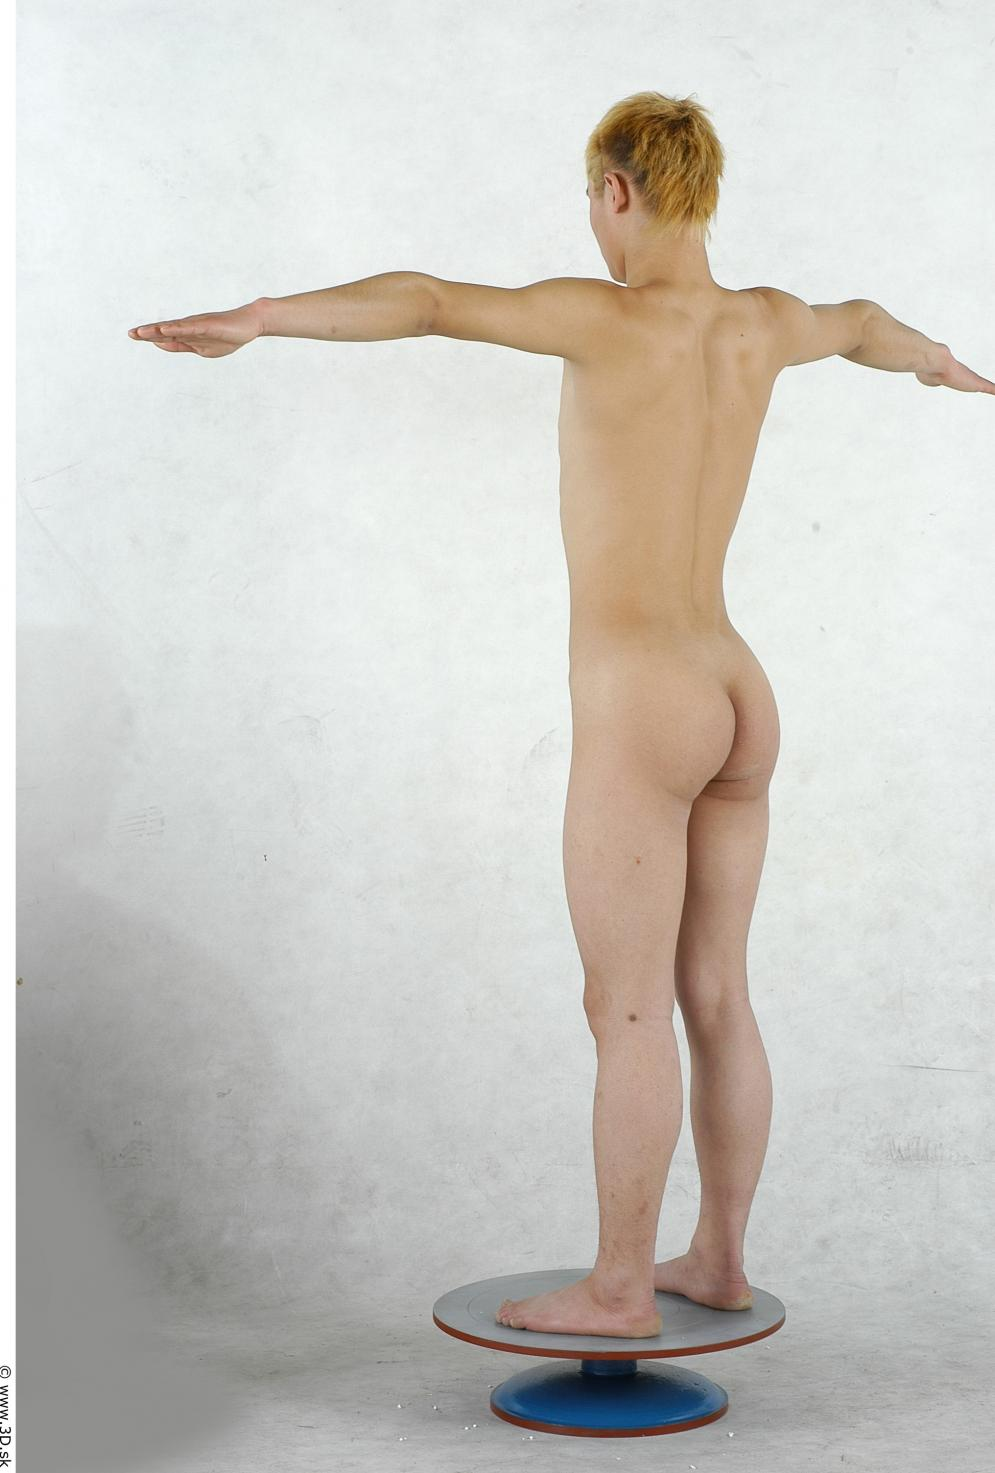 Image from Jinyong - Male asian photo references from 3D.sk - jinyong0001.jpg